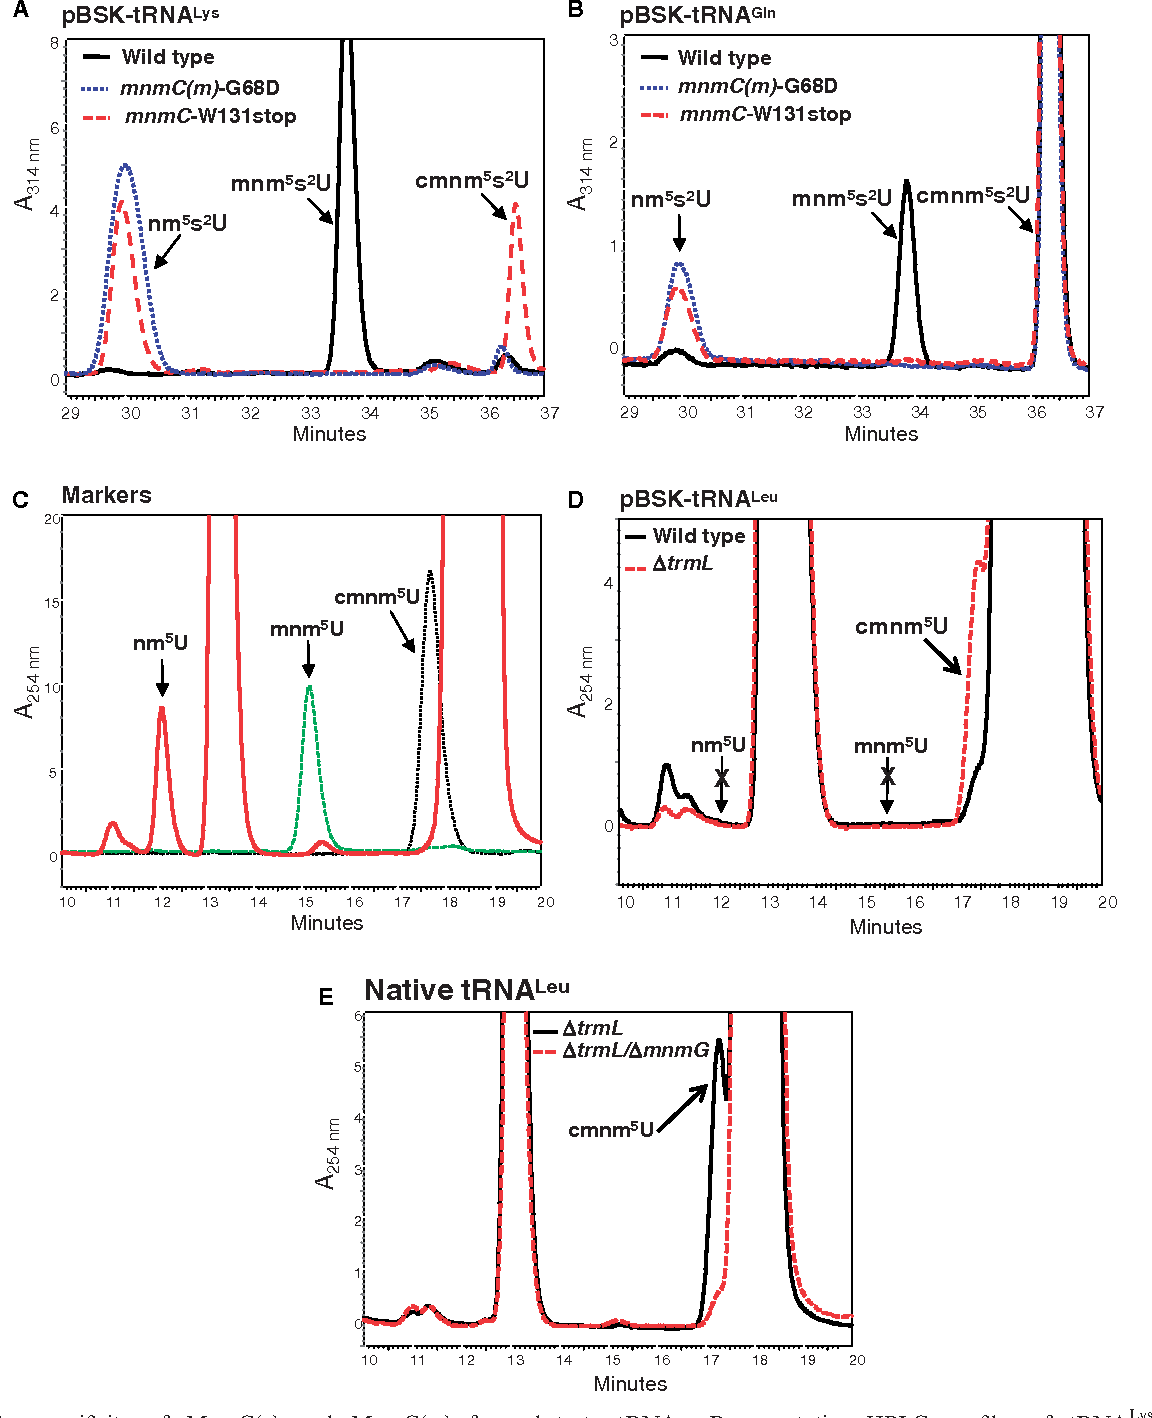 Figure 5. In vivo specificity of MnmC(o) and MnmC(m) for substrate tRNAs. Representative HPLC profiles of tRNALysmnm5s2UUU (A), tRNAGlncmnm5s2UUG (B) and tRNA Leu cmnm5s2UmAA (D) expressed from pIC1664, pIC1714 and pIC1665, respectively. The strains used in panels A and B were IC6017 (WT), IC6018 [mnmC(m)-G68D] and IC6019 (mnmC-W131stop). The strains used in panel D were IC5136 and IC5854. HPLC profiles of commercial markers are shown in panel C. Representative HPLC profiles of native tRNALeucmnm5UmAA purified from strains DtrmL (IC6374) and DtrmL/DmnmG (IC6411) are shown (E).